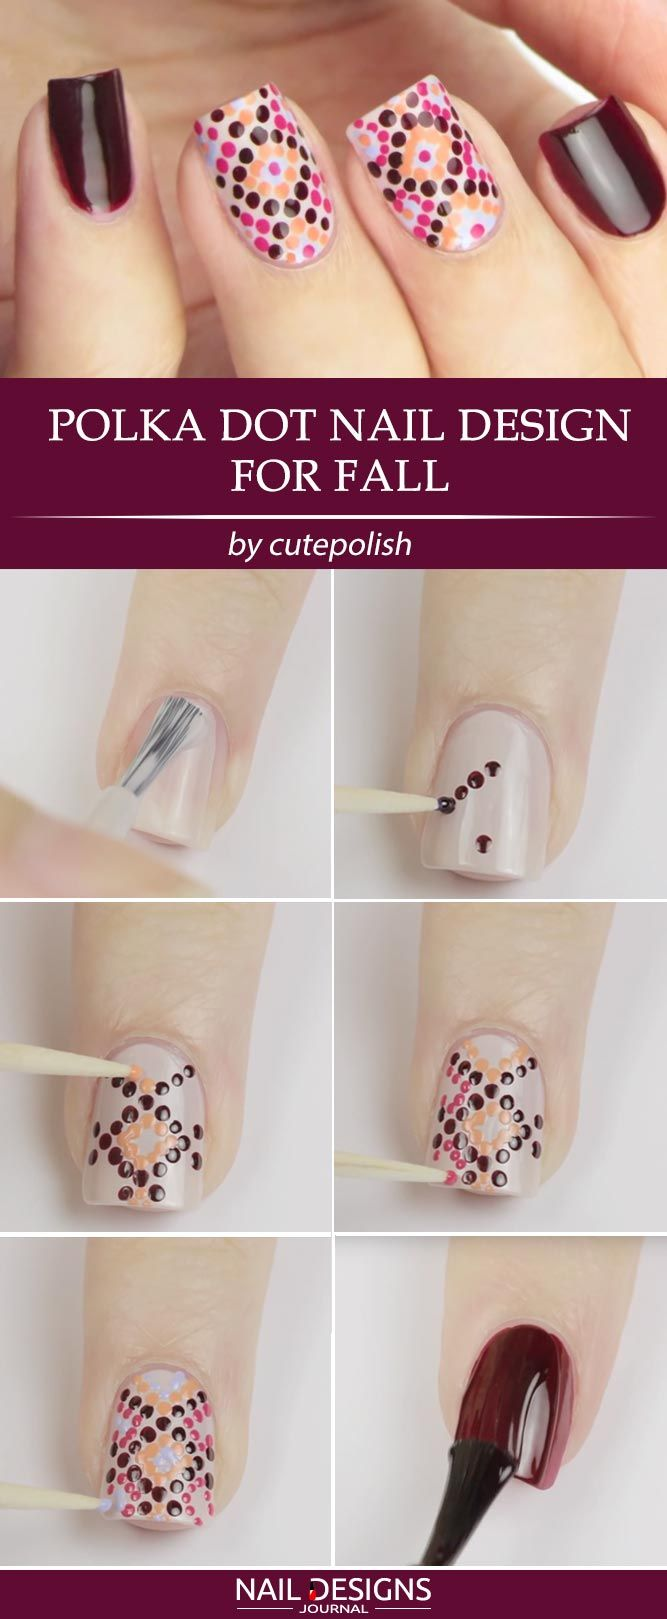 3 Superb Burgundy Nail Designs for Fall You Need to Try ❤ Polka Dot Nail Designs for Fall When it comes to nail designs for fall, the options are limitless. The thing is that we want you to be able to take part in the creation of a masterpiece! https://naildesignsjournal.com/nail-designs-for-fall/ #naildesignsjournal #nails